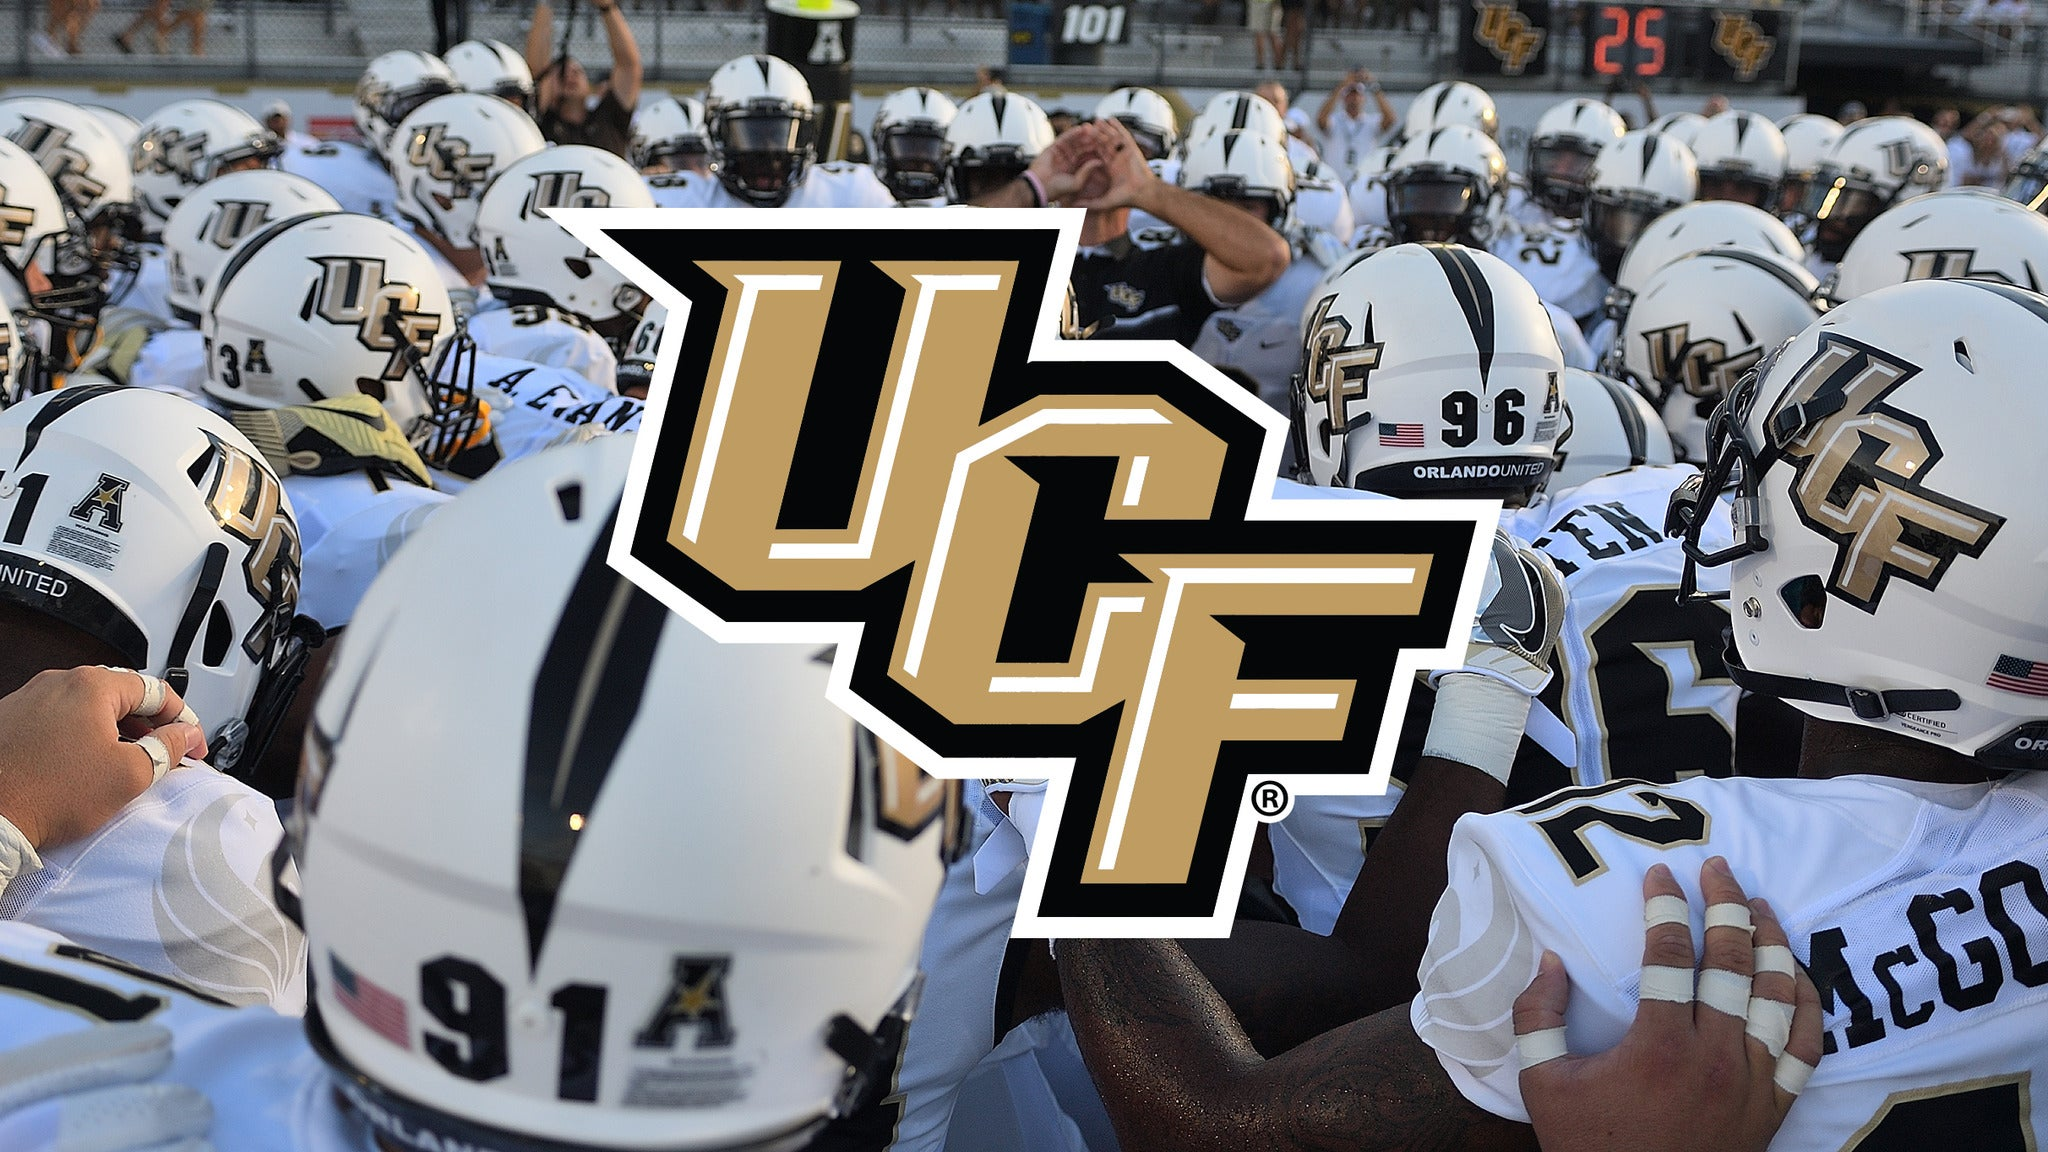 2017 UCF Football Season Ticket at Spectrum Stadium